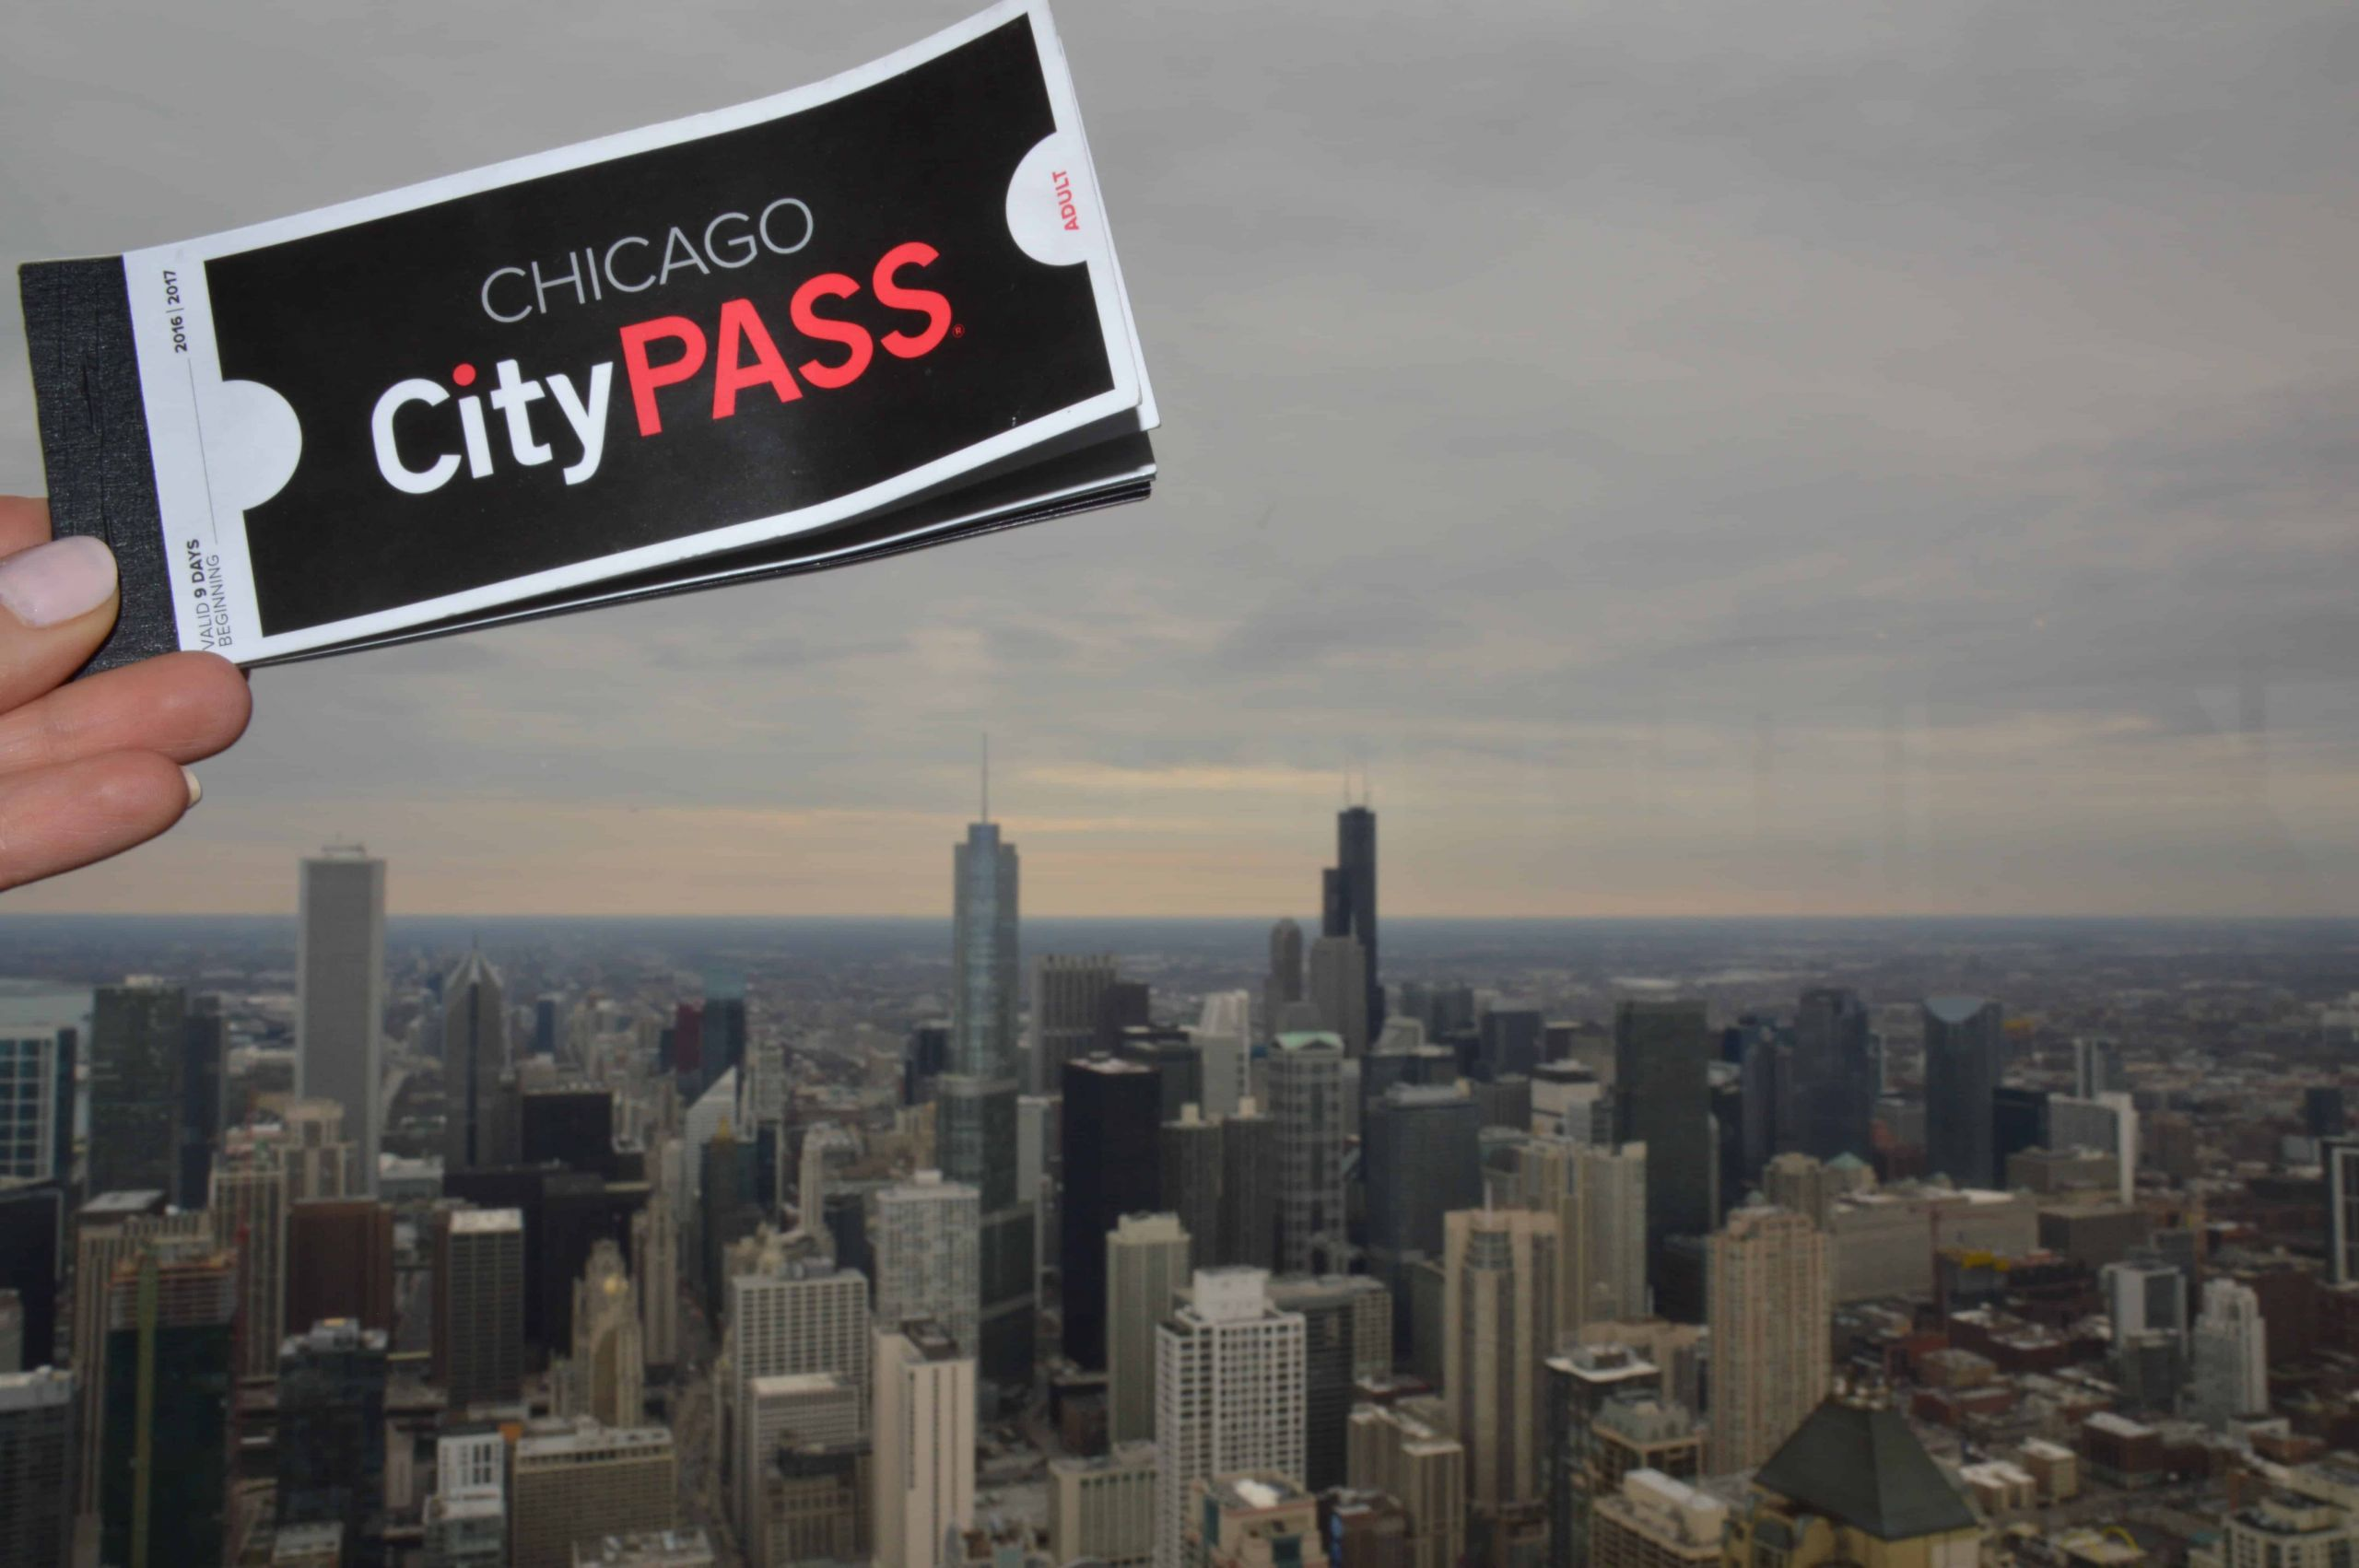 Skydeck Chicago or 360° Chicago